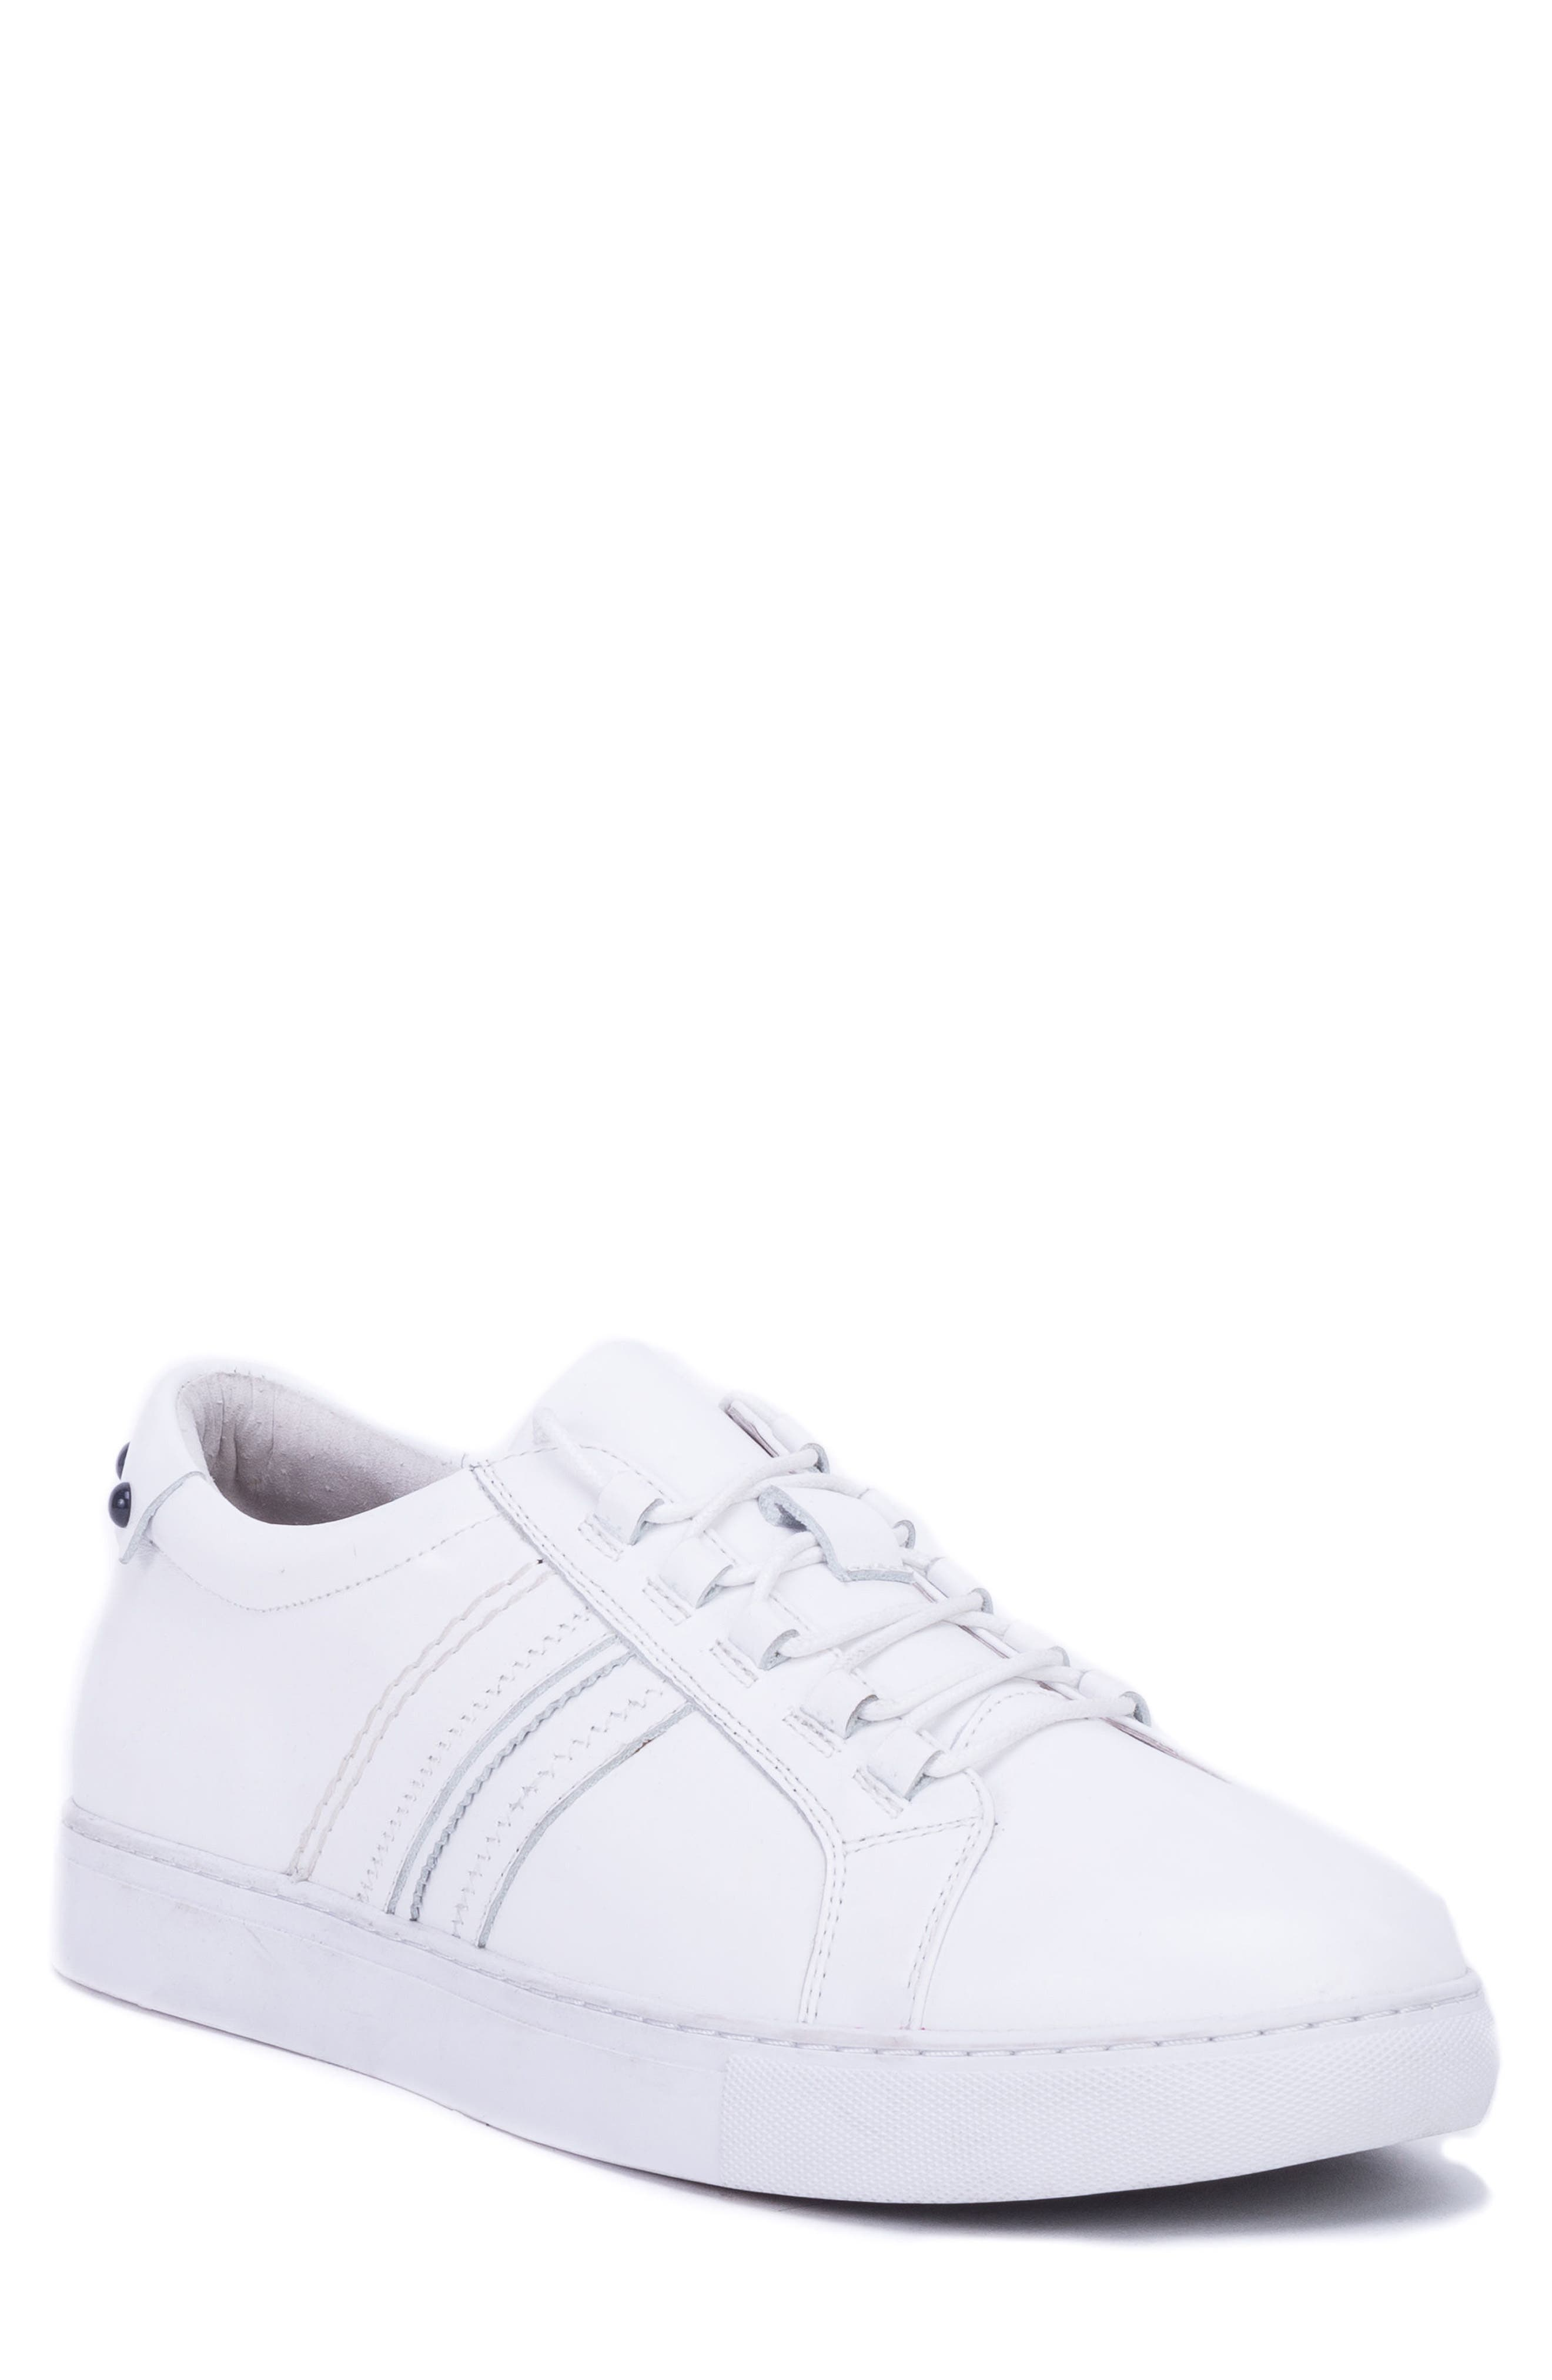 Horton Studded Low Top Sneaker,                         Main,                         color, WHITE LEATHER